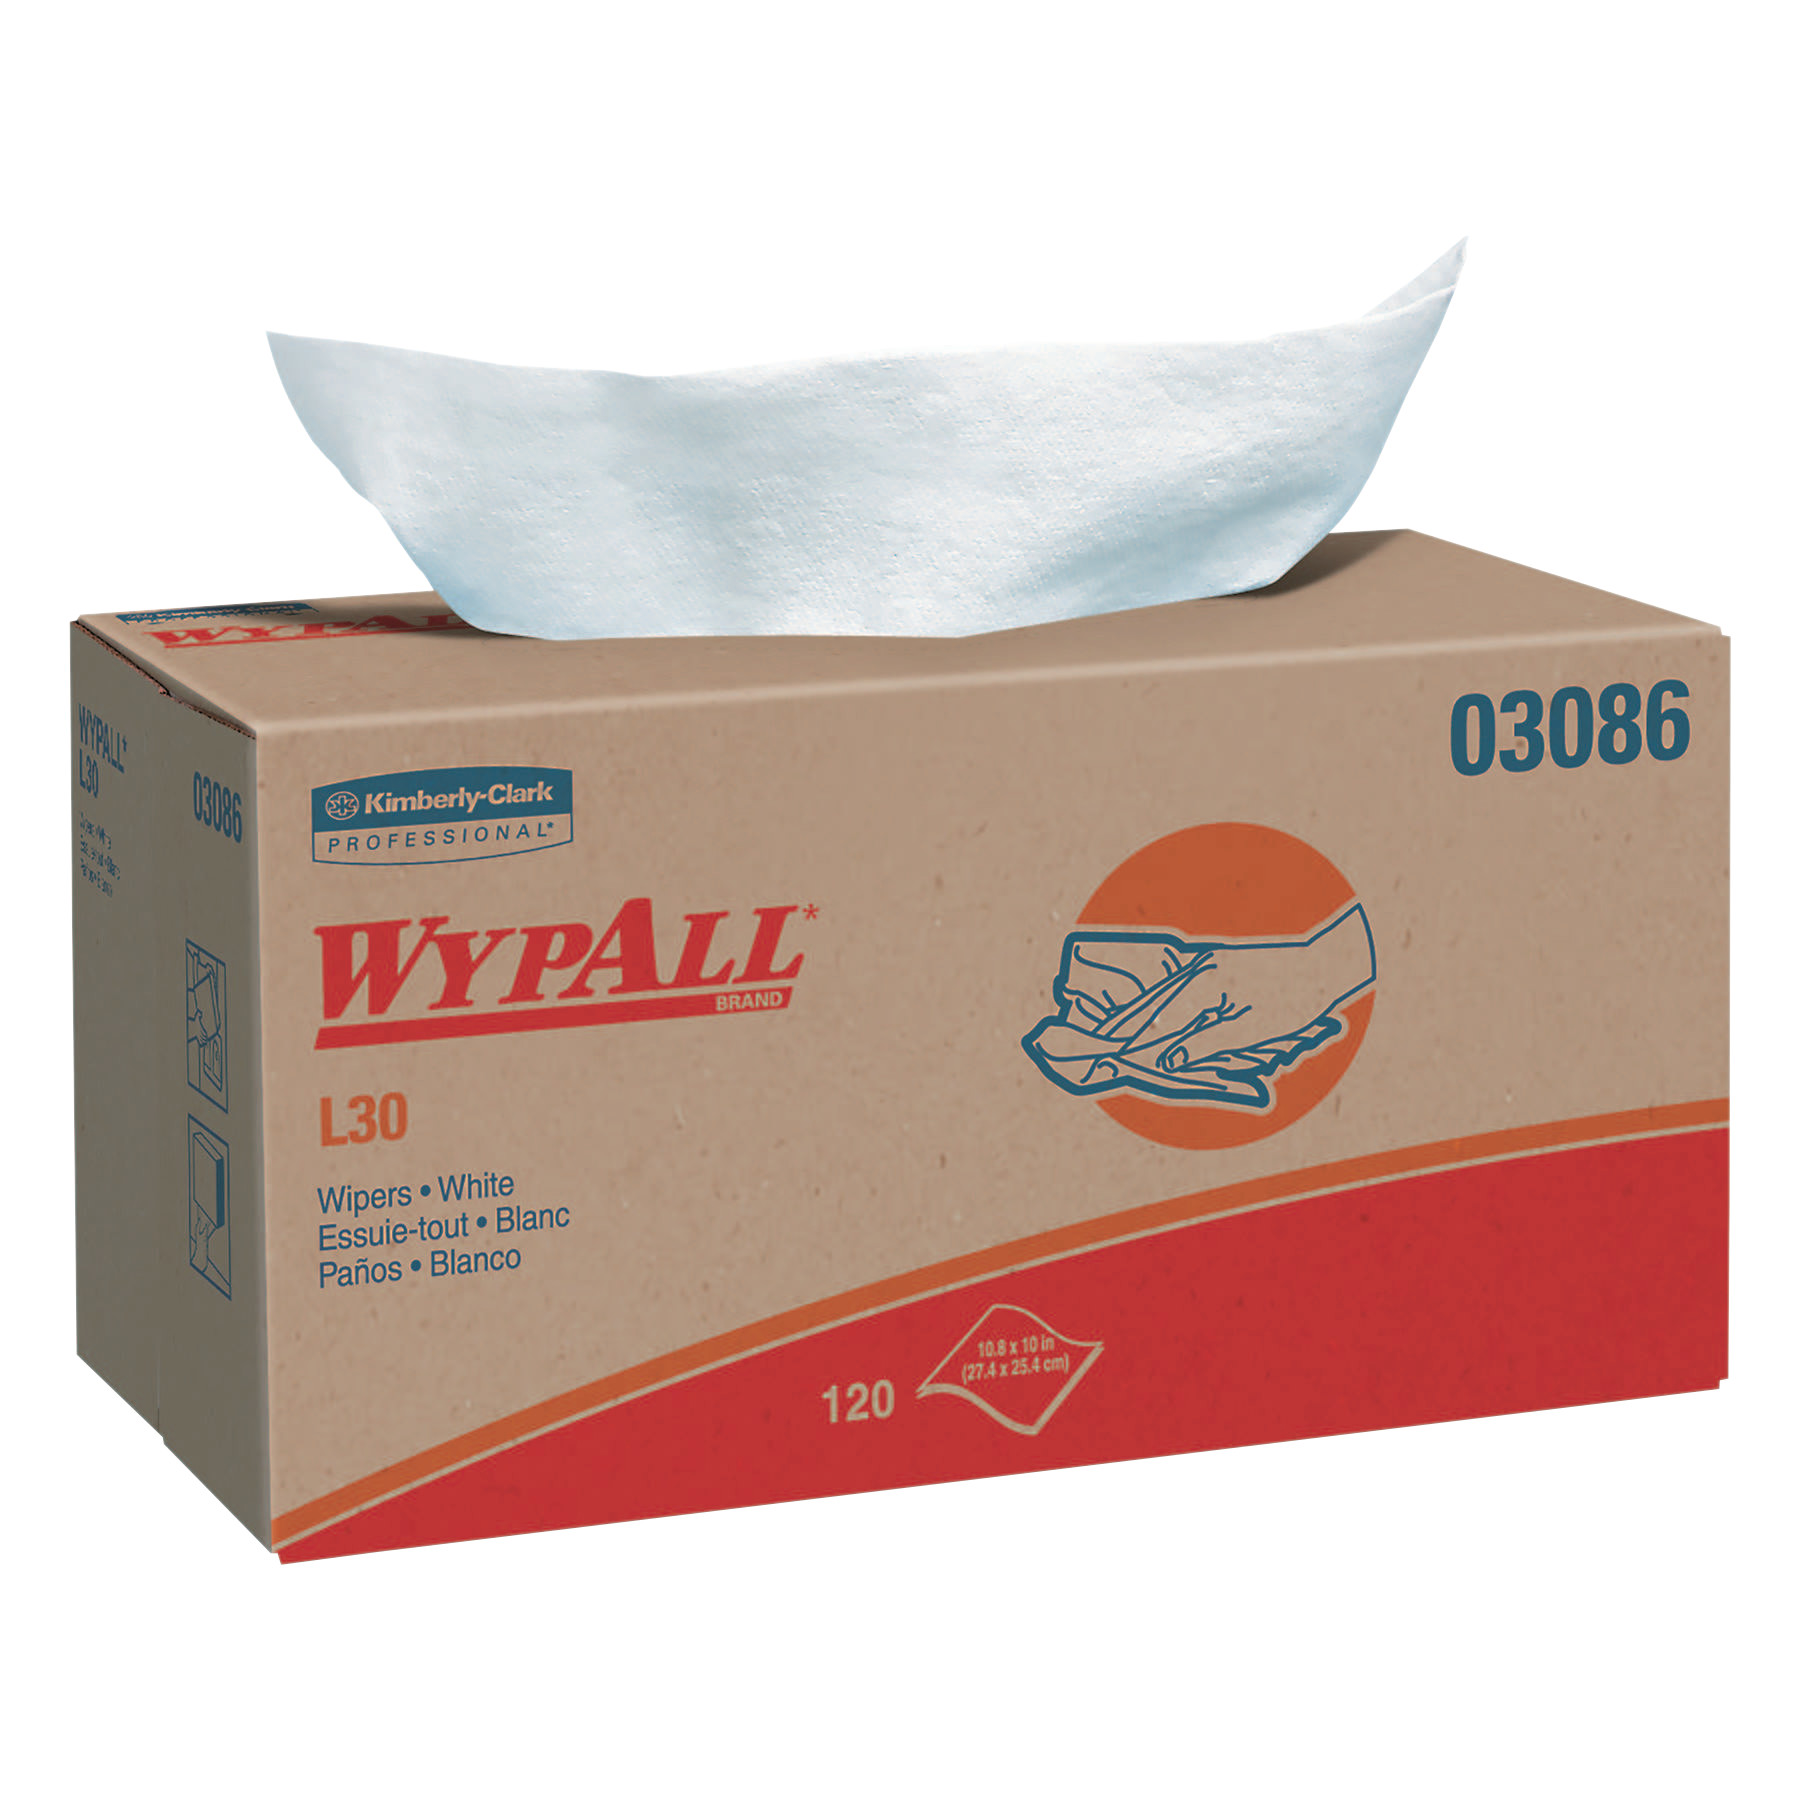 Kimberly-Clark Professional WypAll L30 Wipers, Pop-Up Box, White